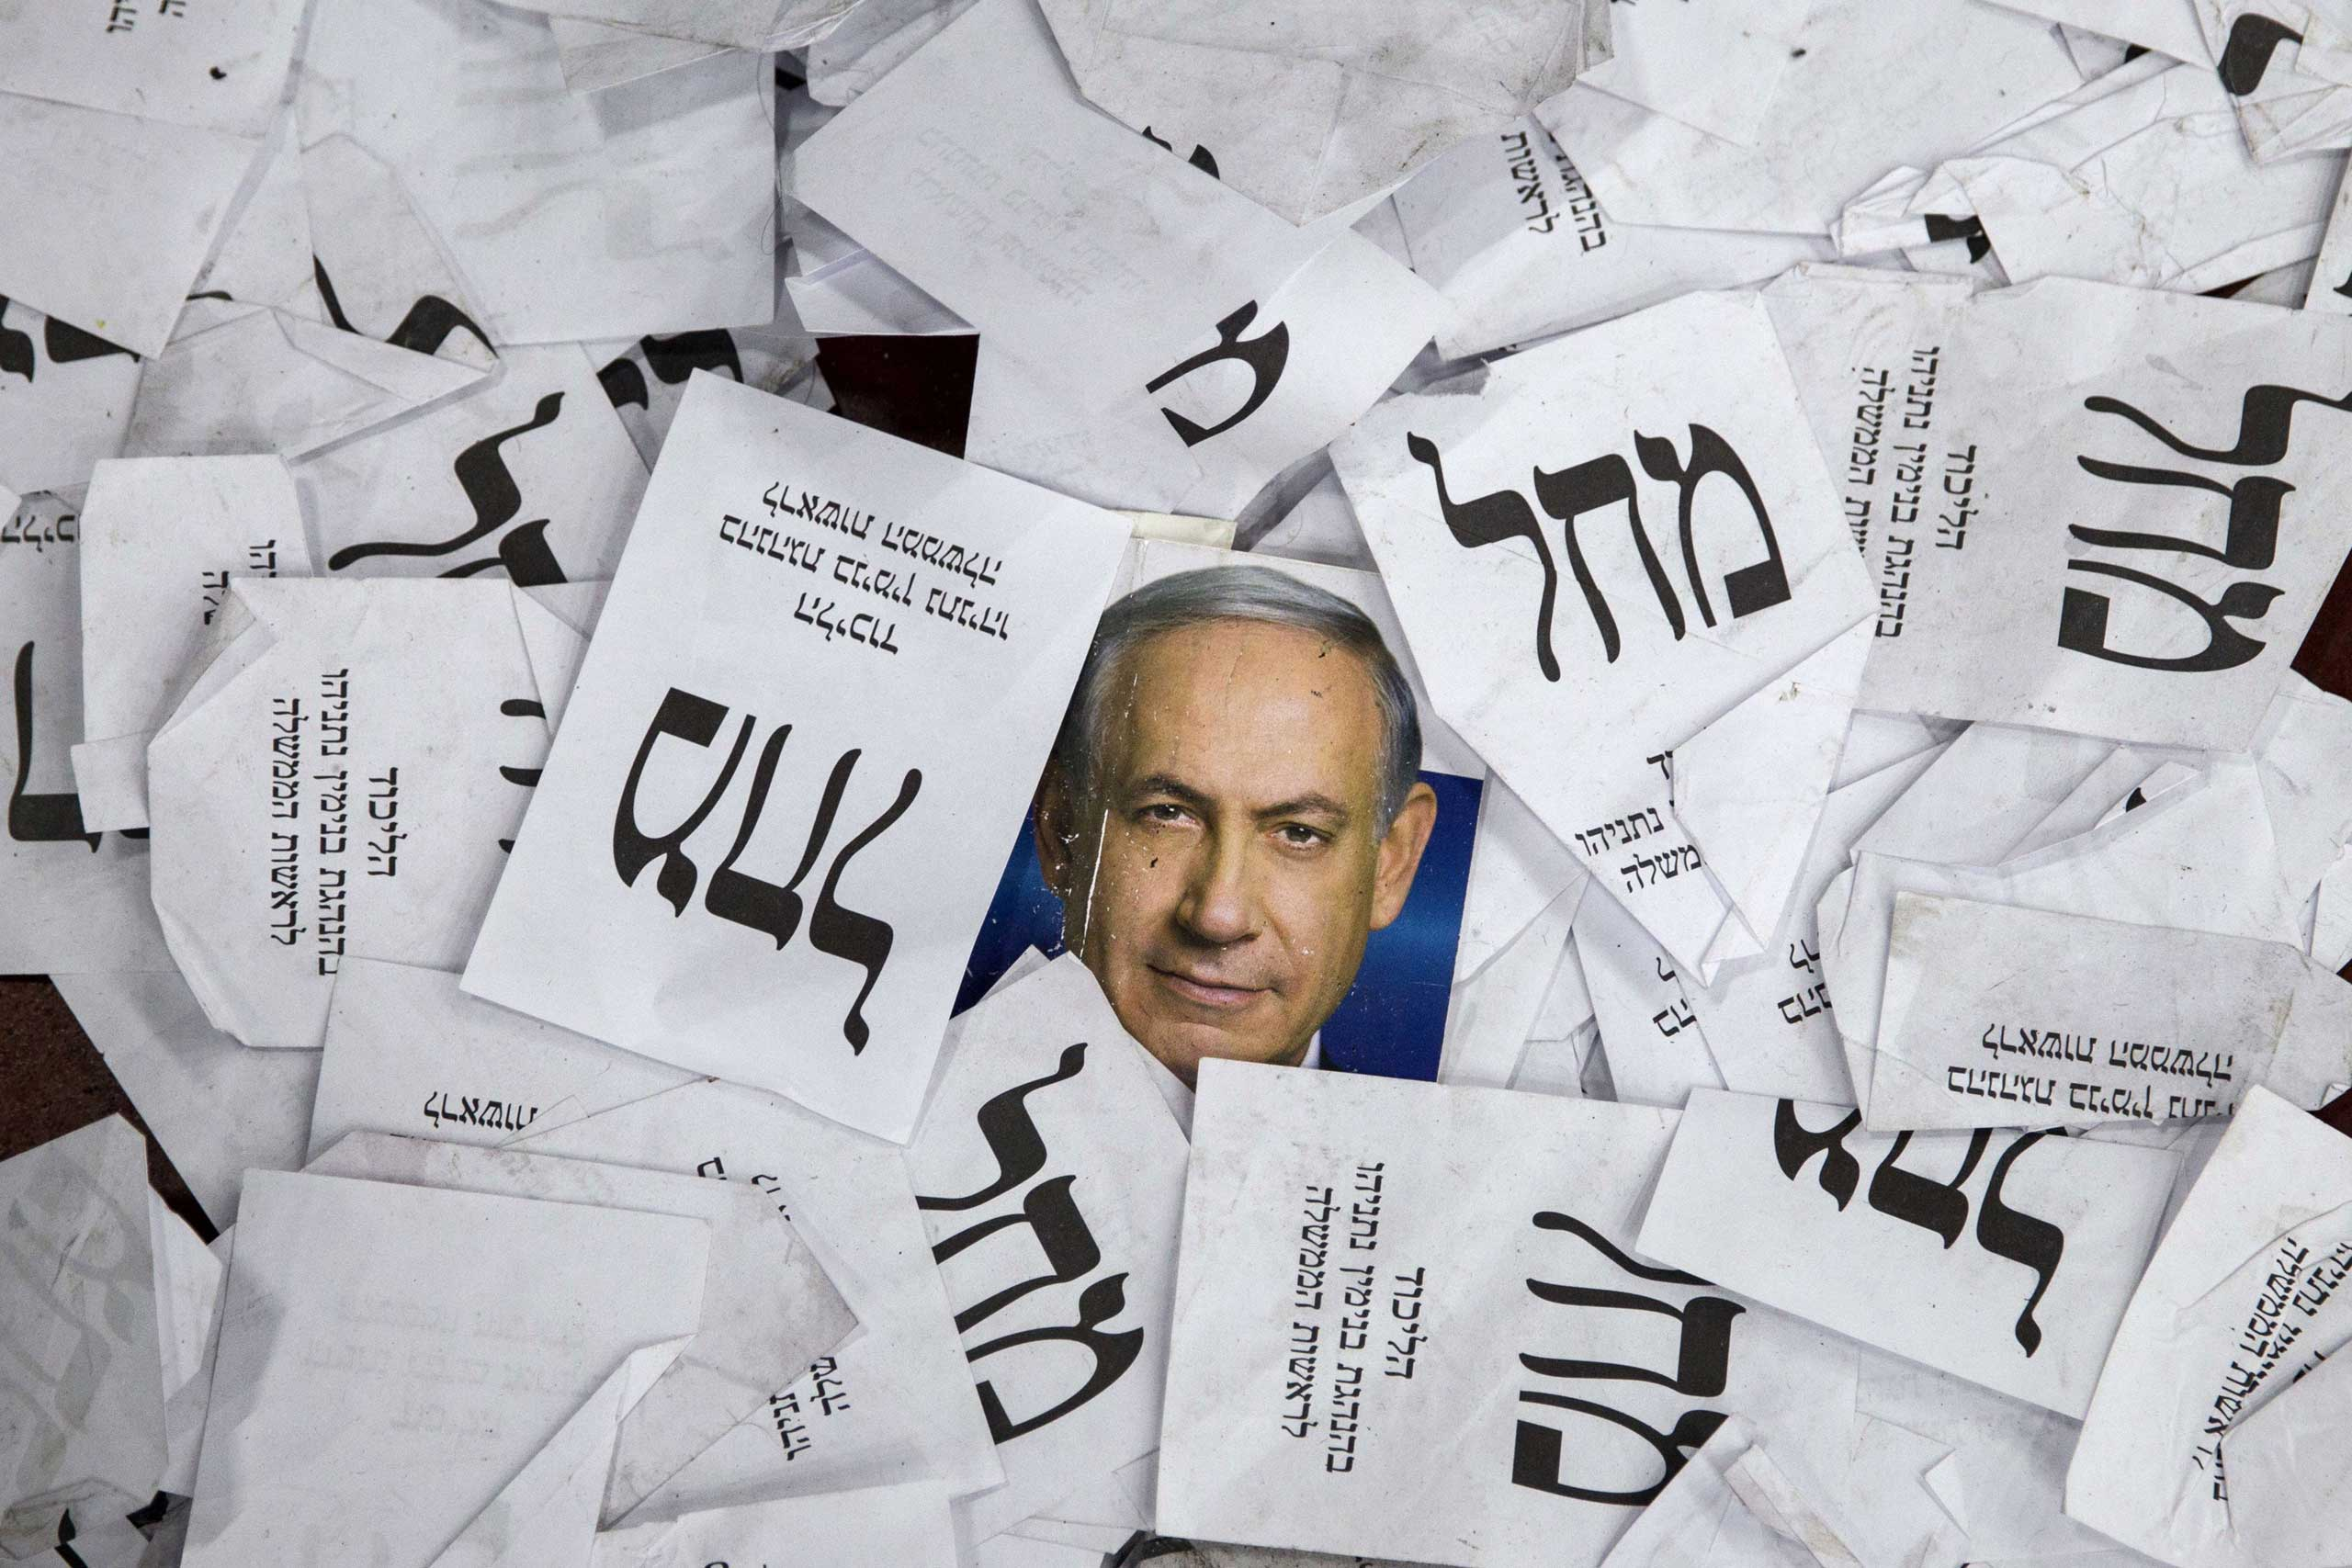 Copies of ballots papers and campaign posters for Israel's Prime Minister Benjamin Netanyahu's Likud Party lie on the ground in the aftermath of the country's parliamentary elections in Tel Aviv on March 18, 2015.